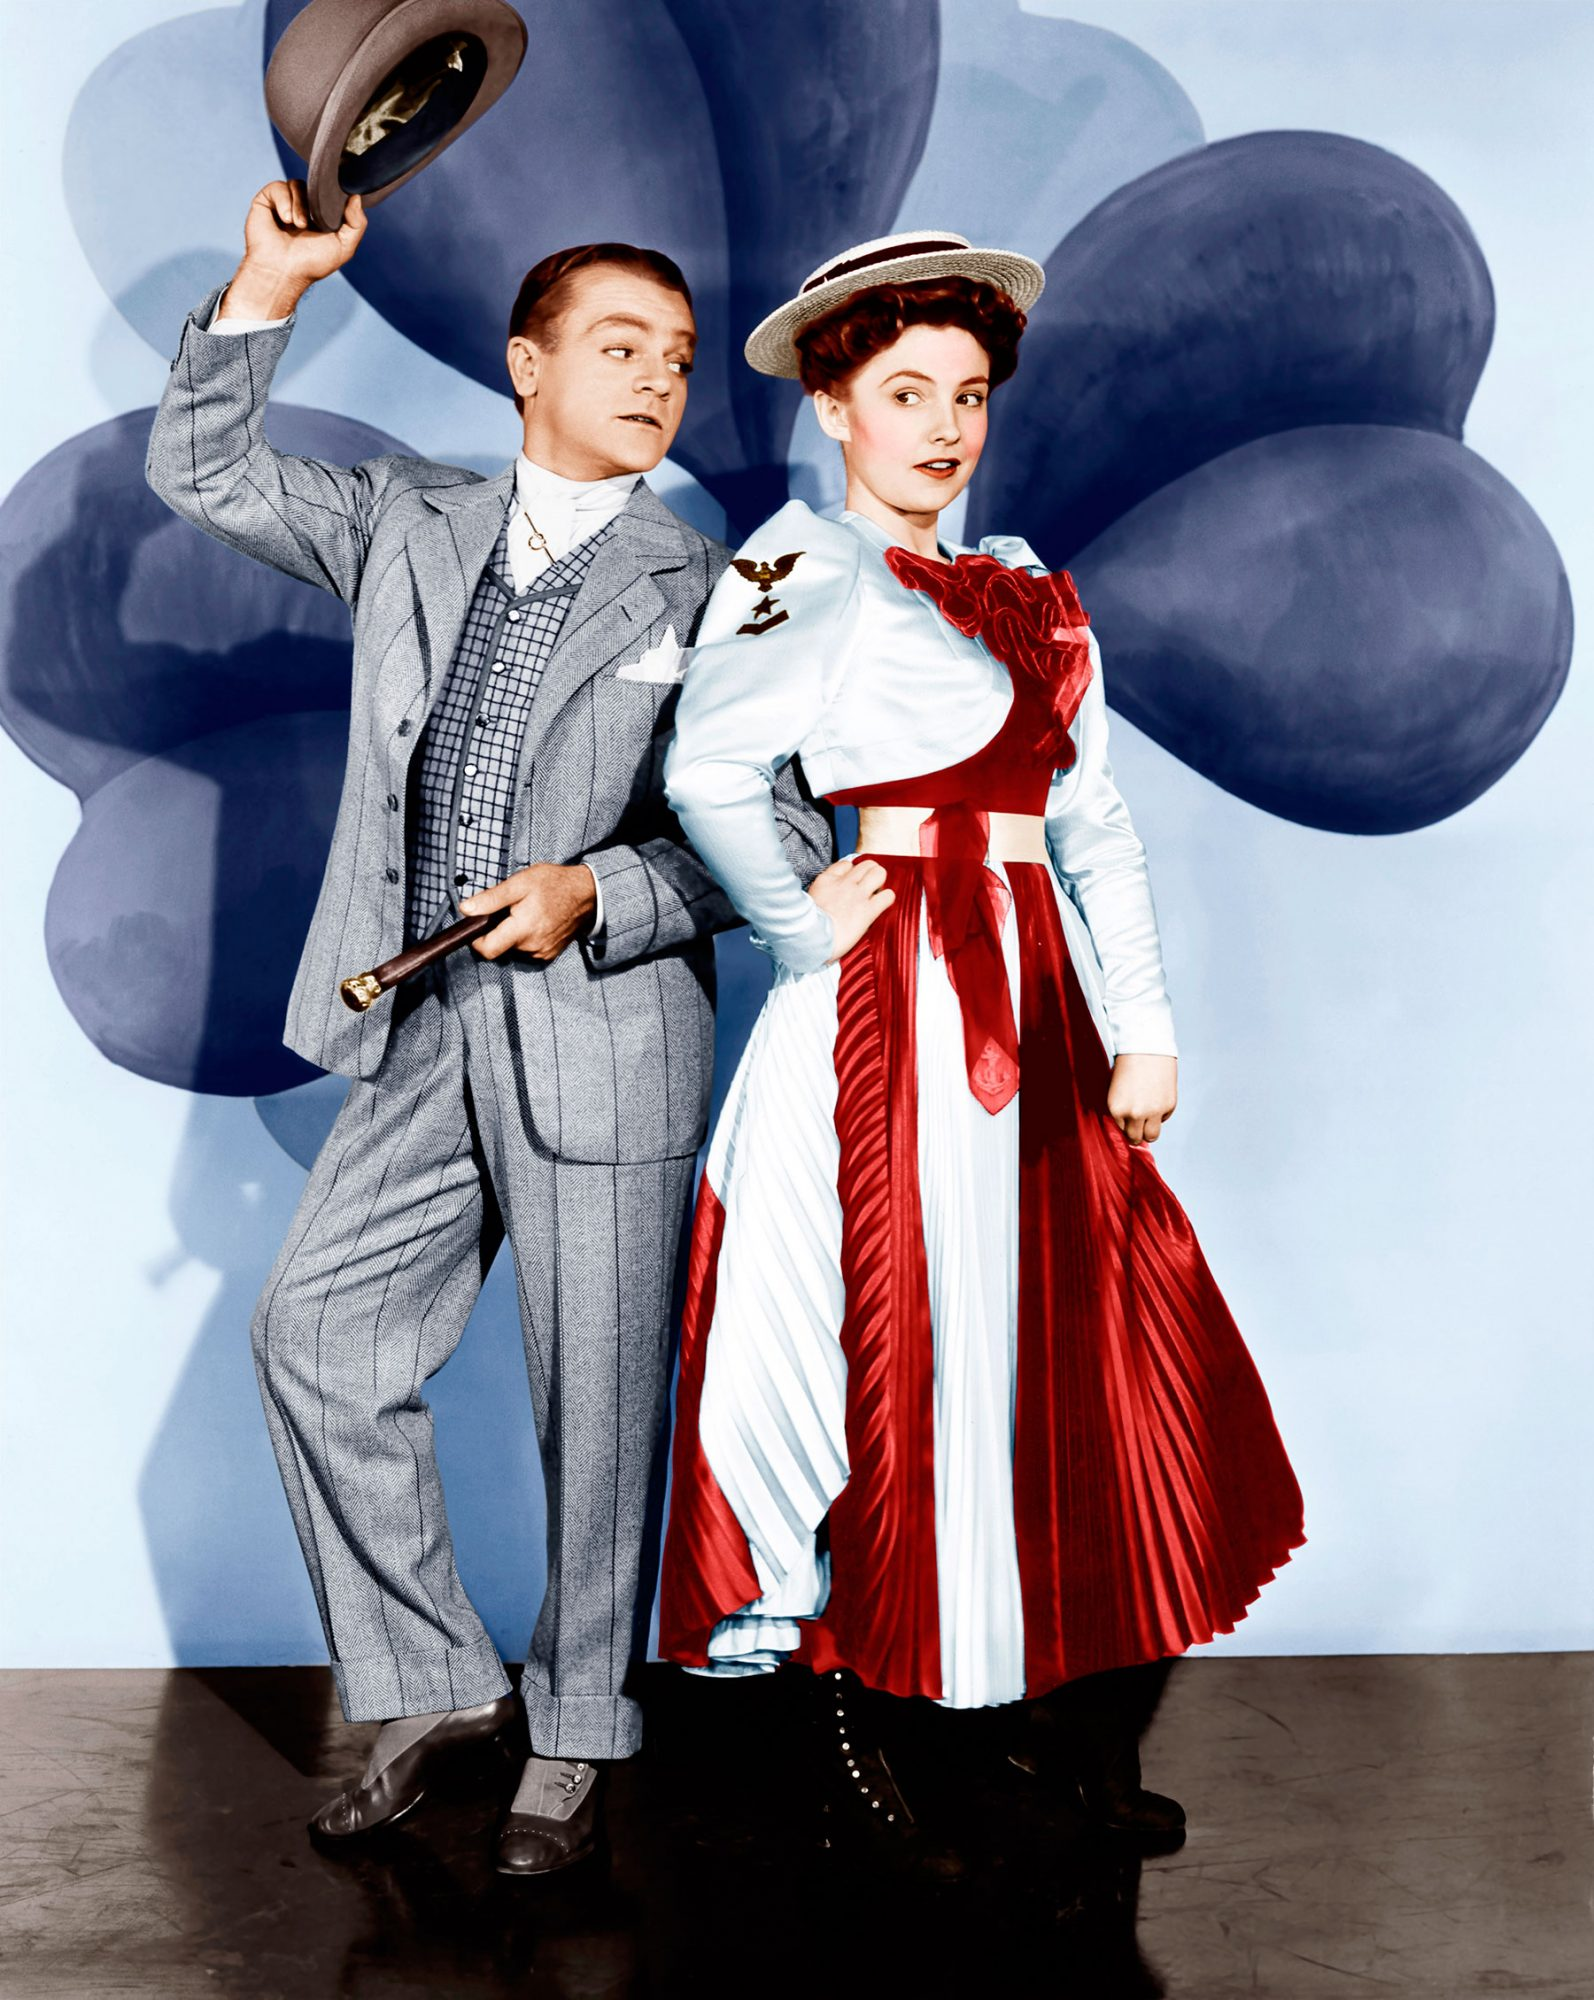 YANKEE DOODLE DANDY, from left: James Cagney (as George M. Cohan), Joan Leslie, 1942